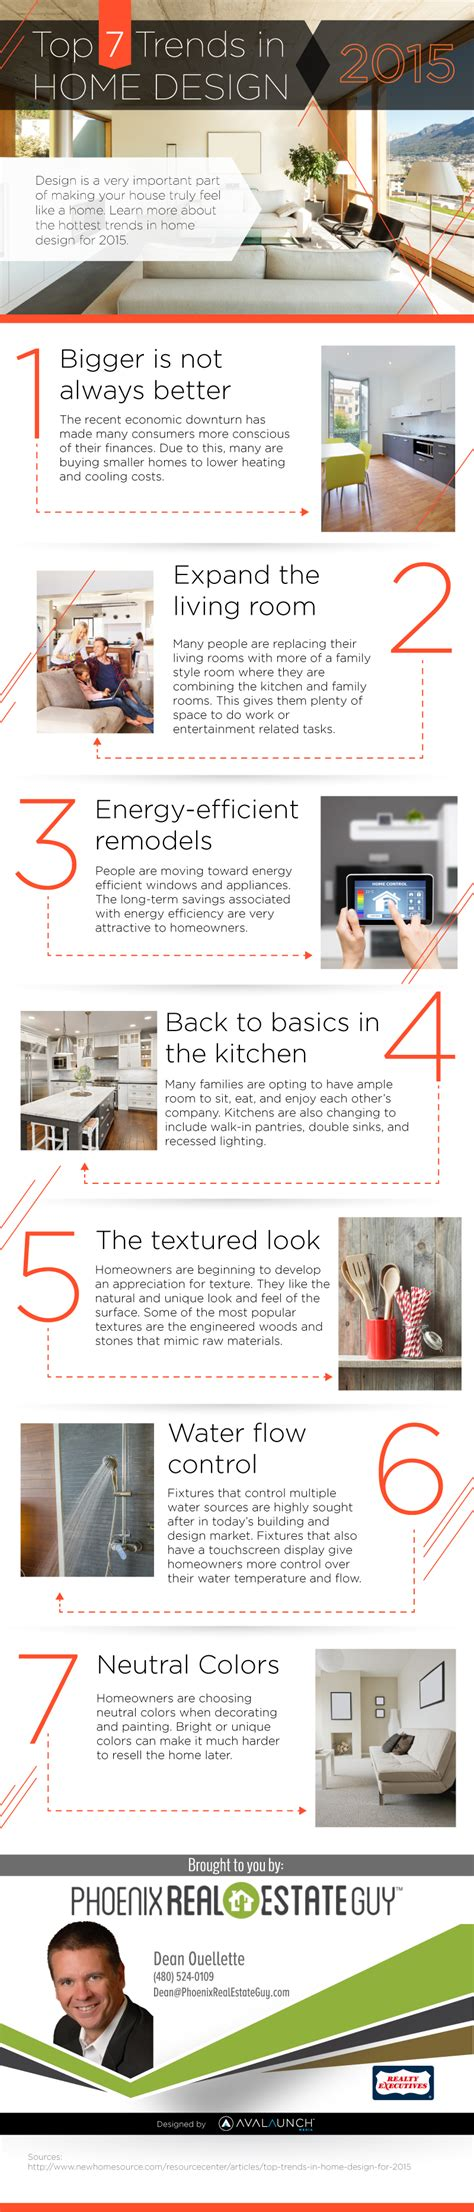 7 design trends from the last year with infographic 7 design trends from the last year with infographic